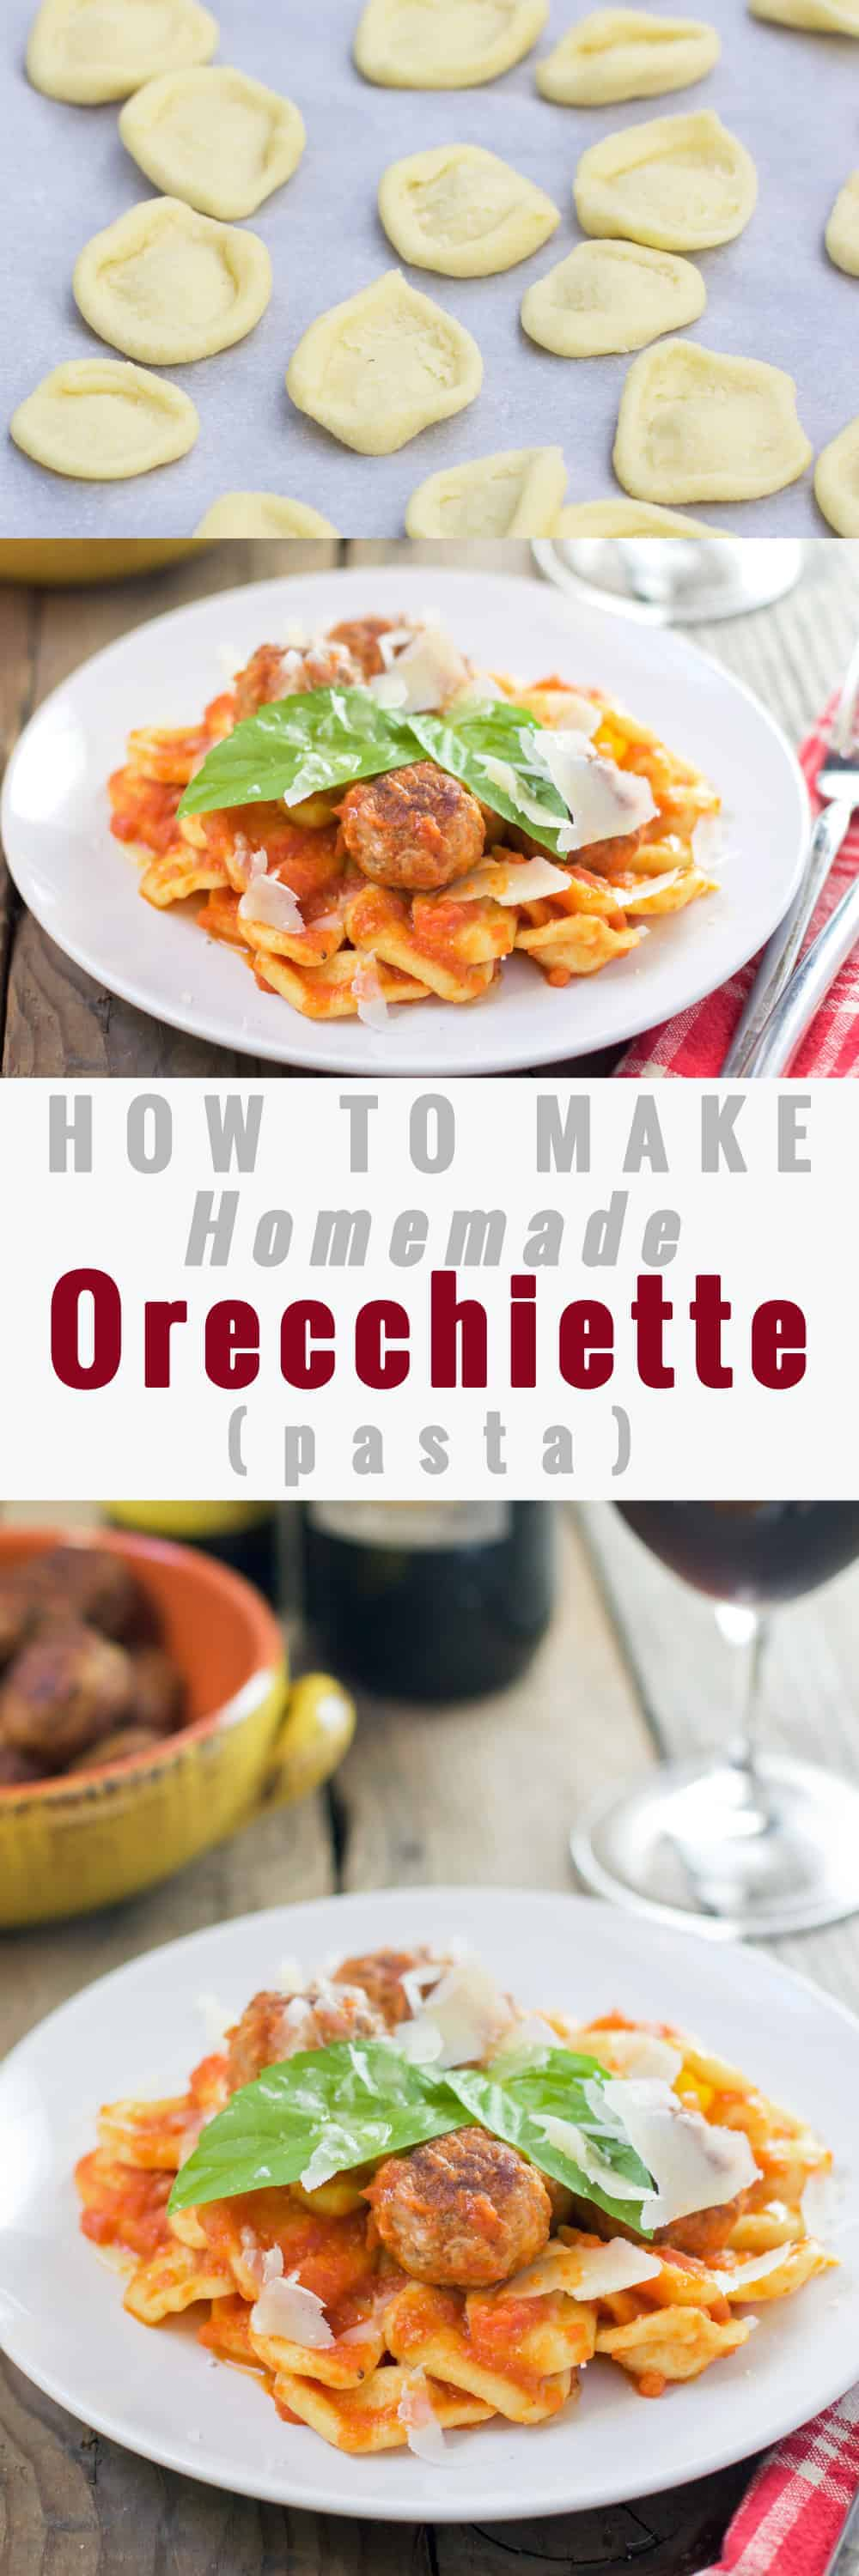 How to Make Homemade Orecchiette (pasta)